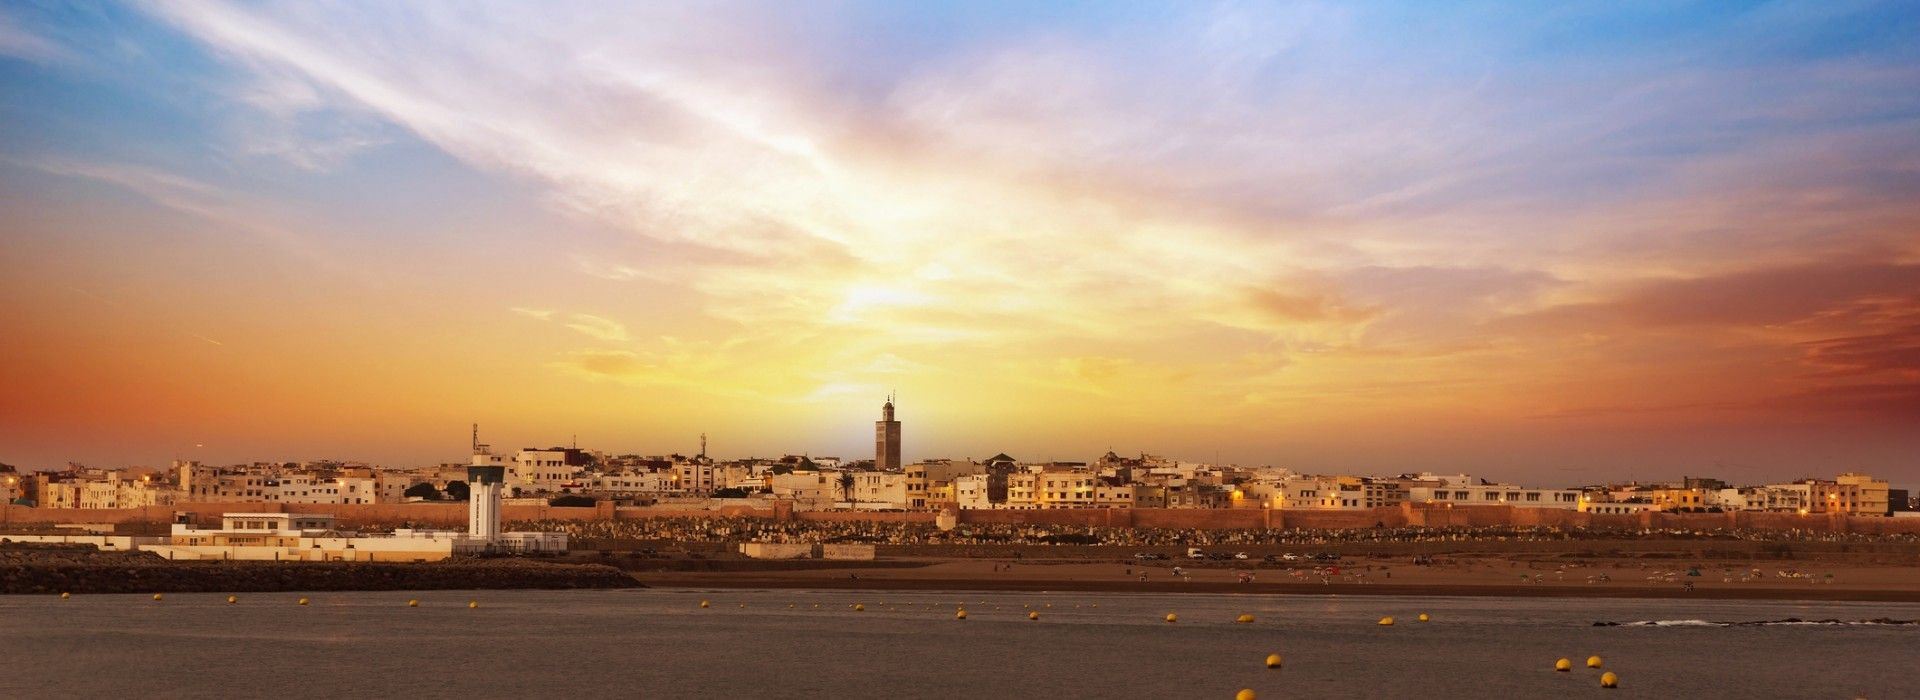 City sightseeing Tours in Casablanca